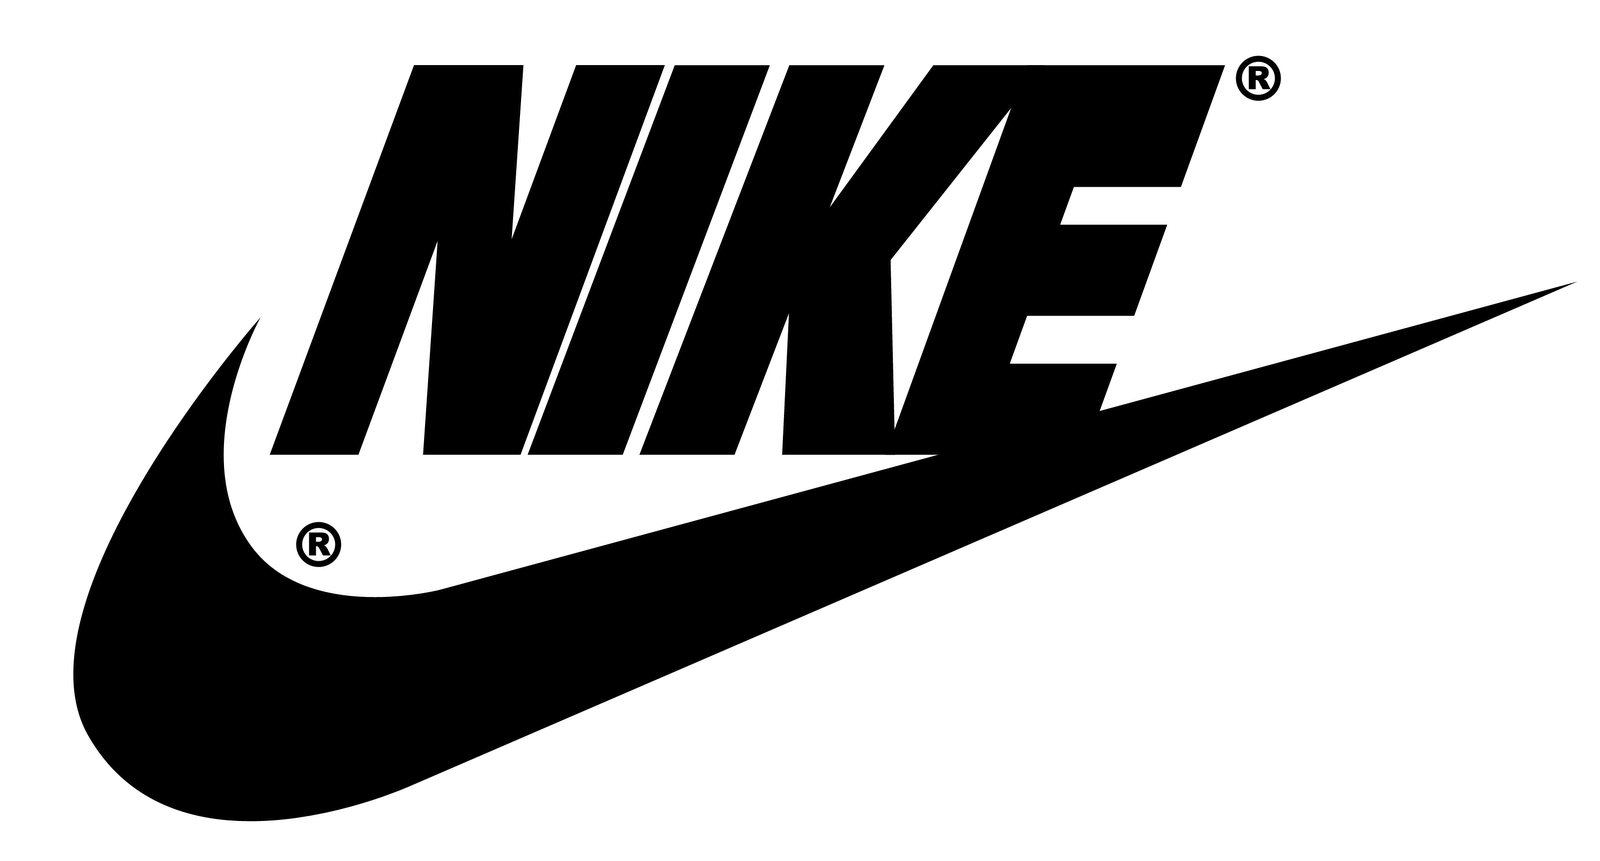 Nike just do it logo png. Nke stock can and